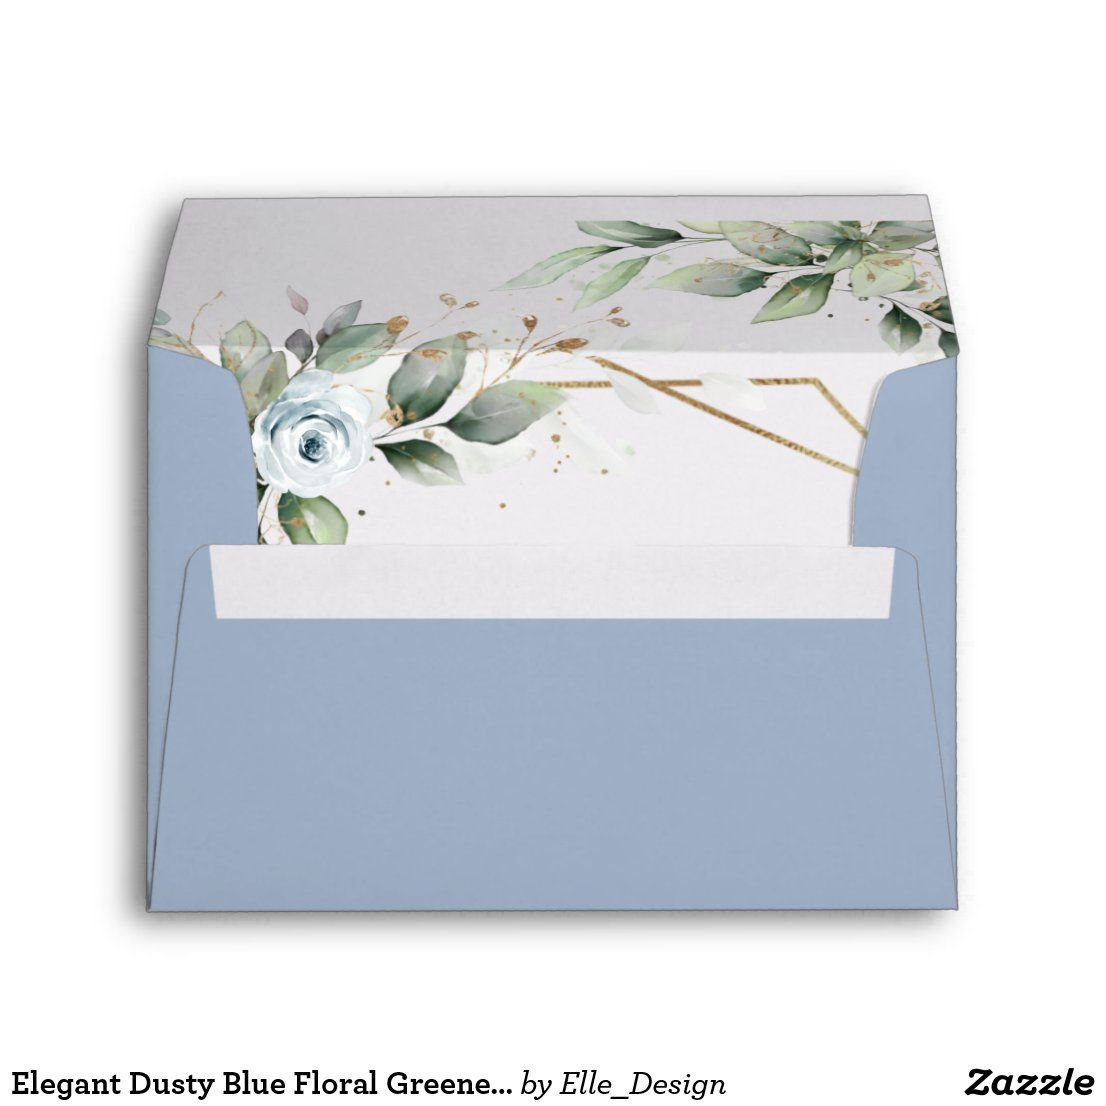 Elegant Dusty Blue Floral Greenery For 5x7 Card Envelope Zazzle Com In 2021 Card Envelopes Wedding Themes Winter Wedding Invitations Stationery